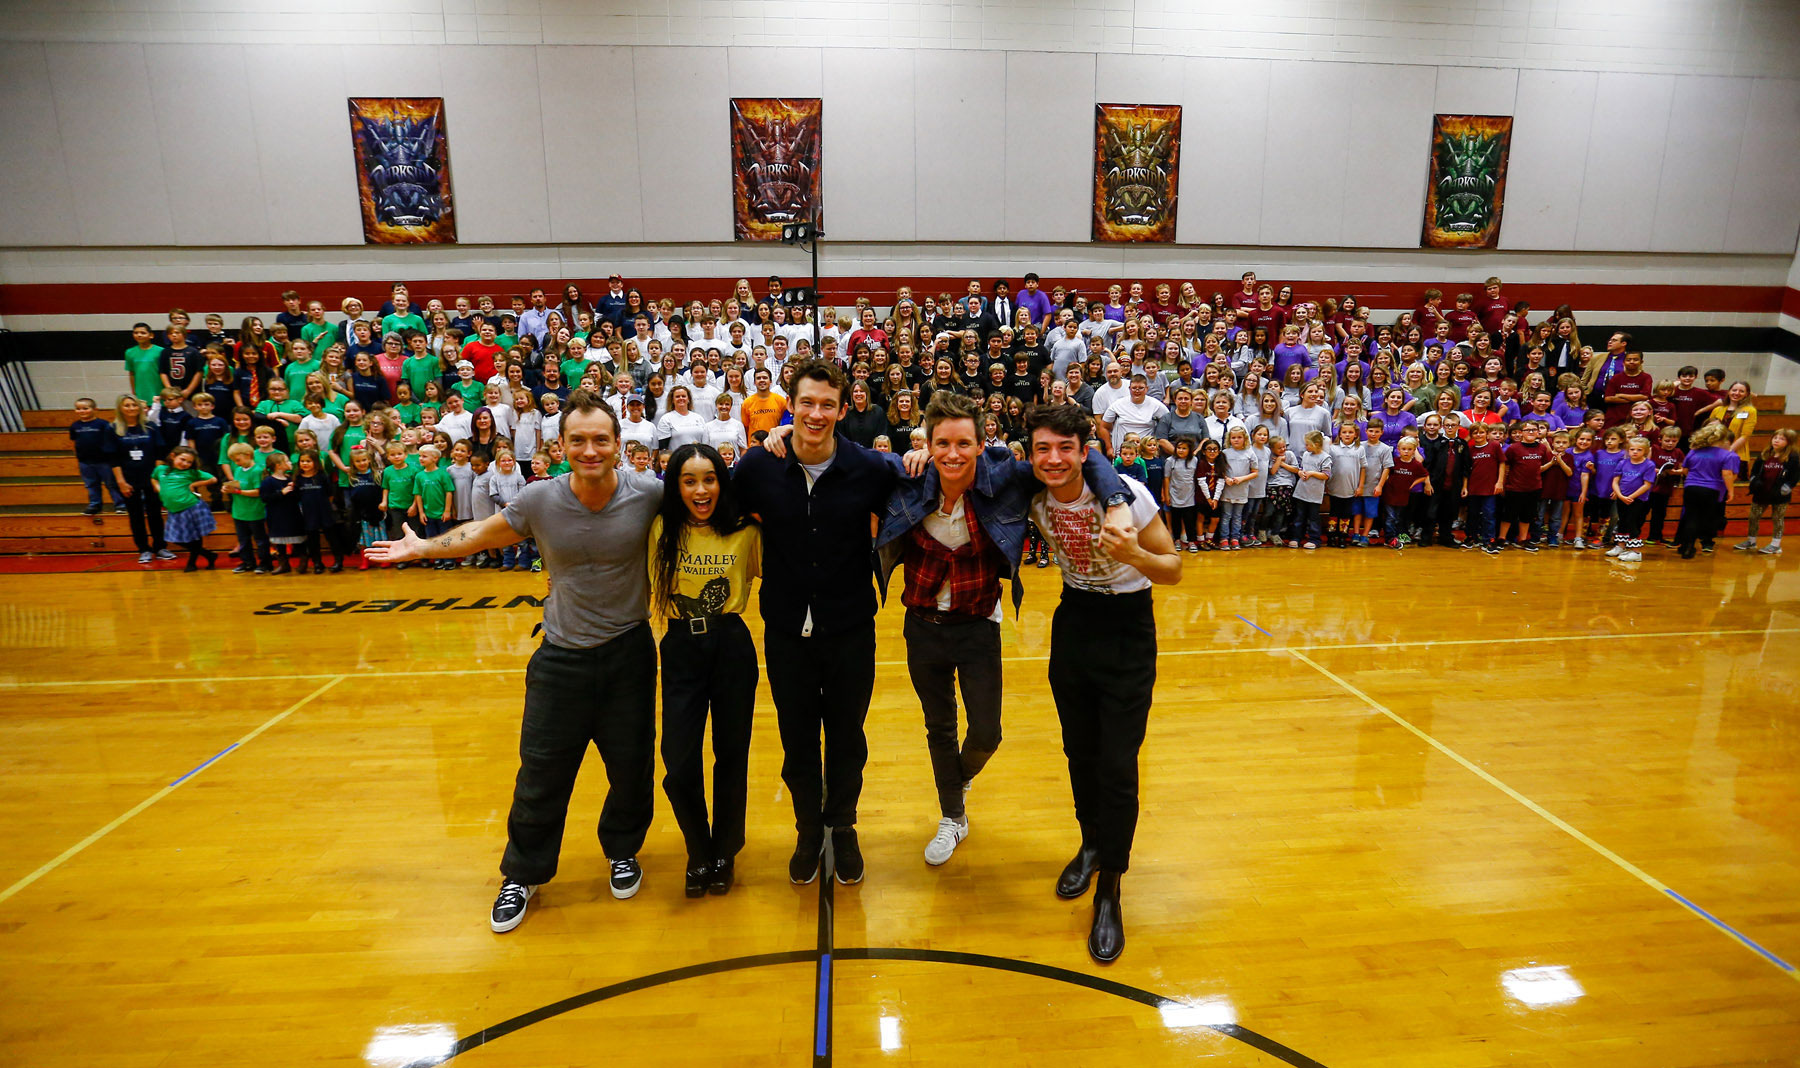 """Cast members from """"Fantastic Beasts: The Crimes of Grindelwald"""" celebrate Wizarding World Day at Parkside Middle School in Baileyton, AL.(Photo by Butch Dill/Getty Images)"""